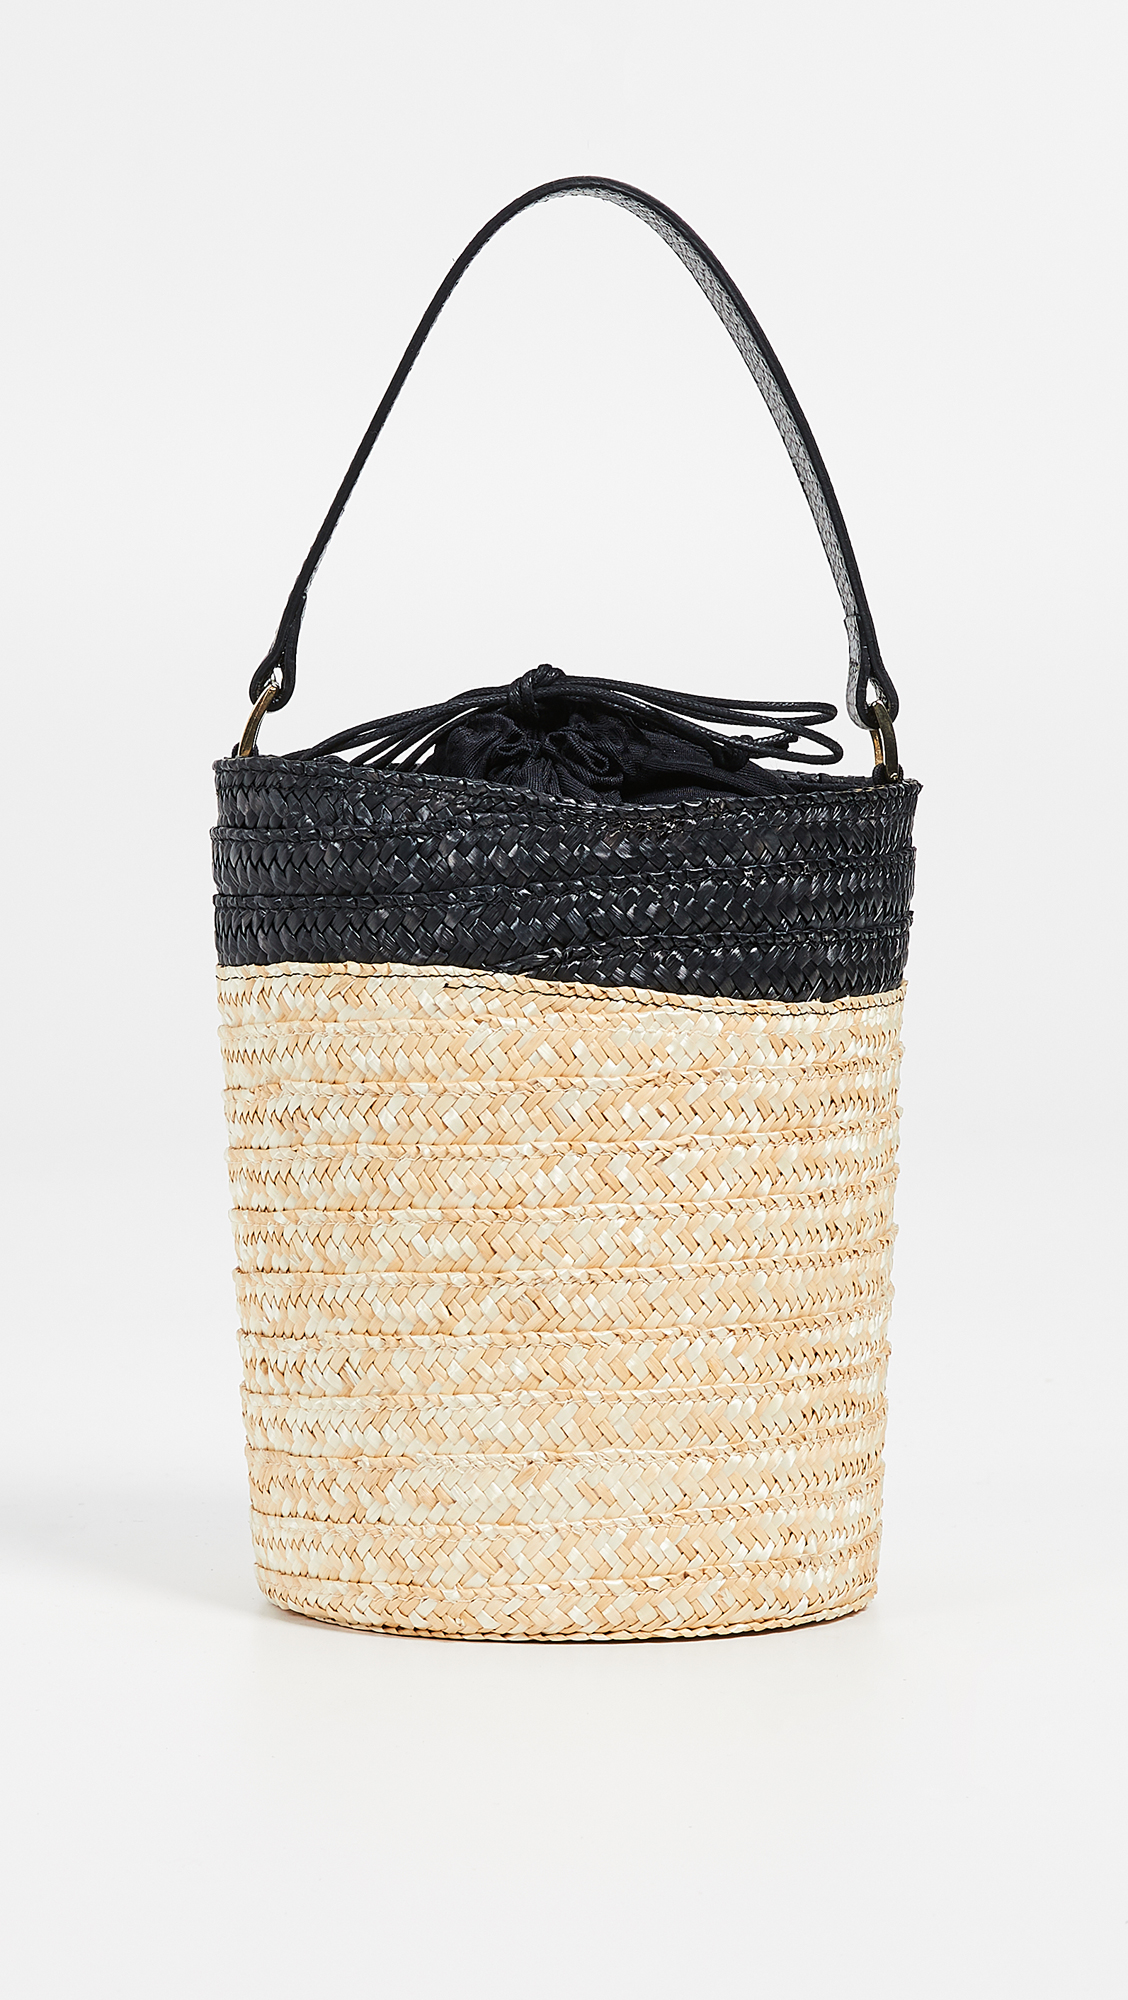 Caterina Bertini Straw Tote in Black